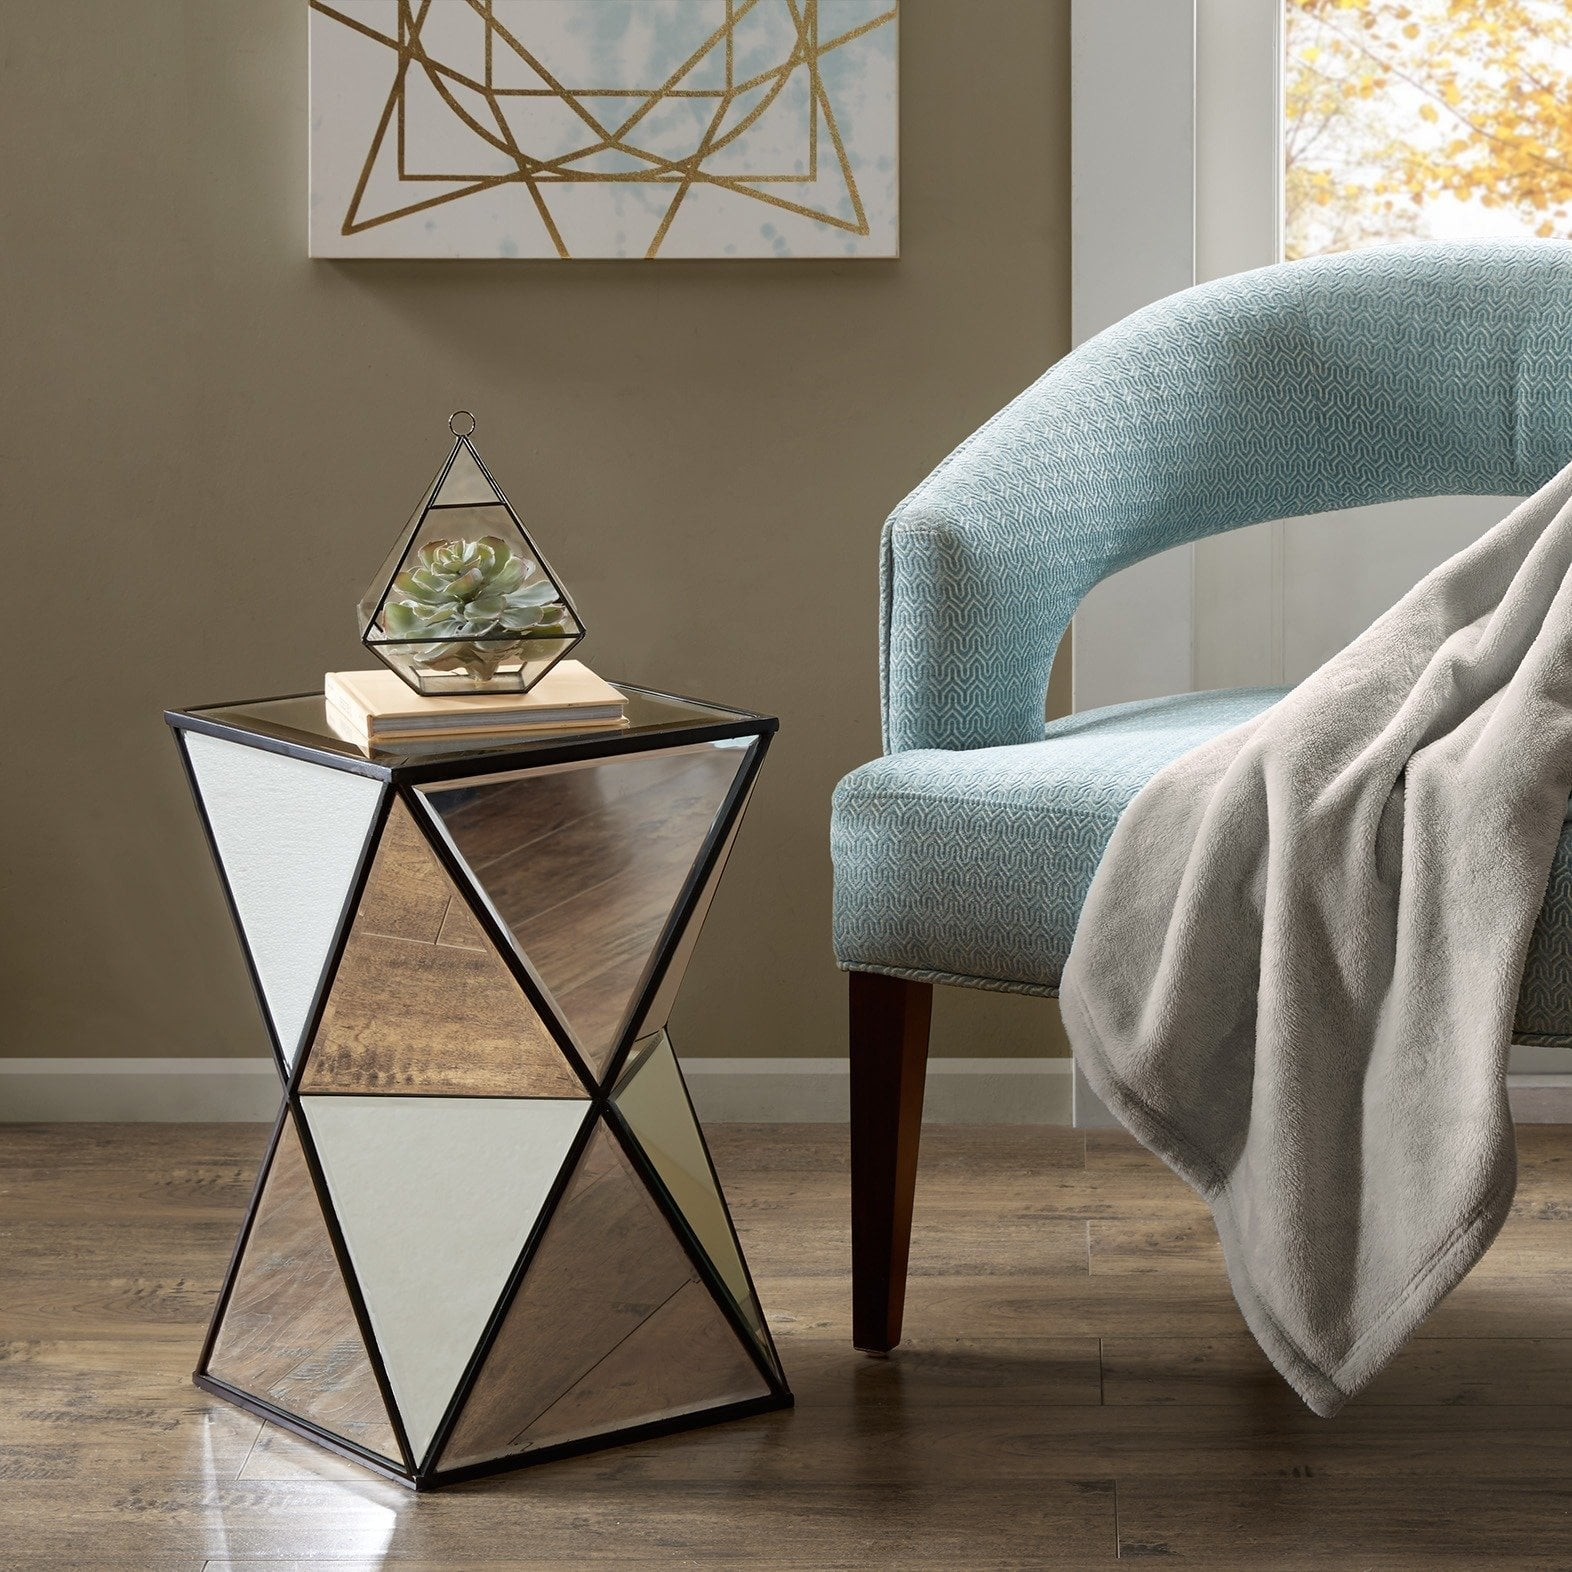 clay alder home campbell blick silver angular mirror accent tables with matching mirrors table front entry small square furniture unique end turquoise pieces kirklands lamps round